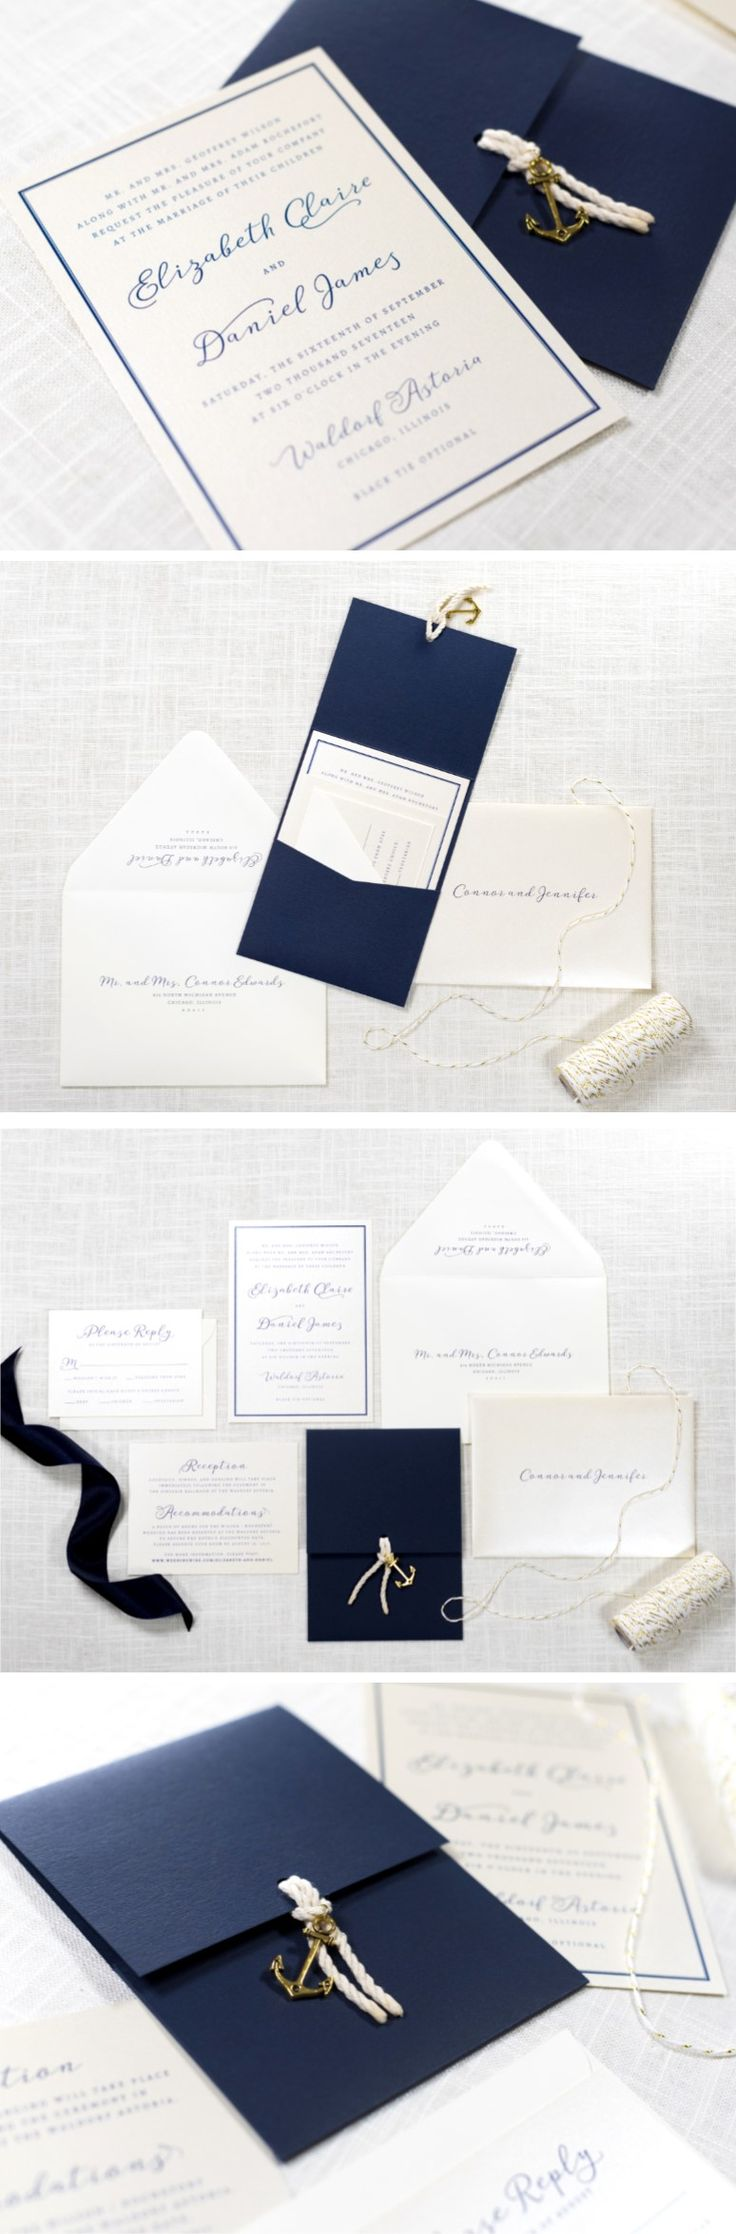 Nautical Anchor Charm and Rope Wedding Invitation in Navy, Ivory, and Opal Champagne Shimmer - The Nautica Suite